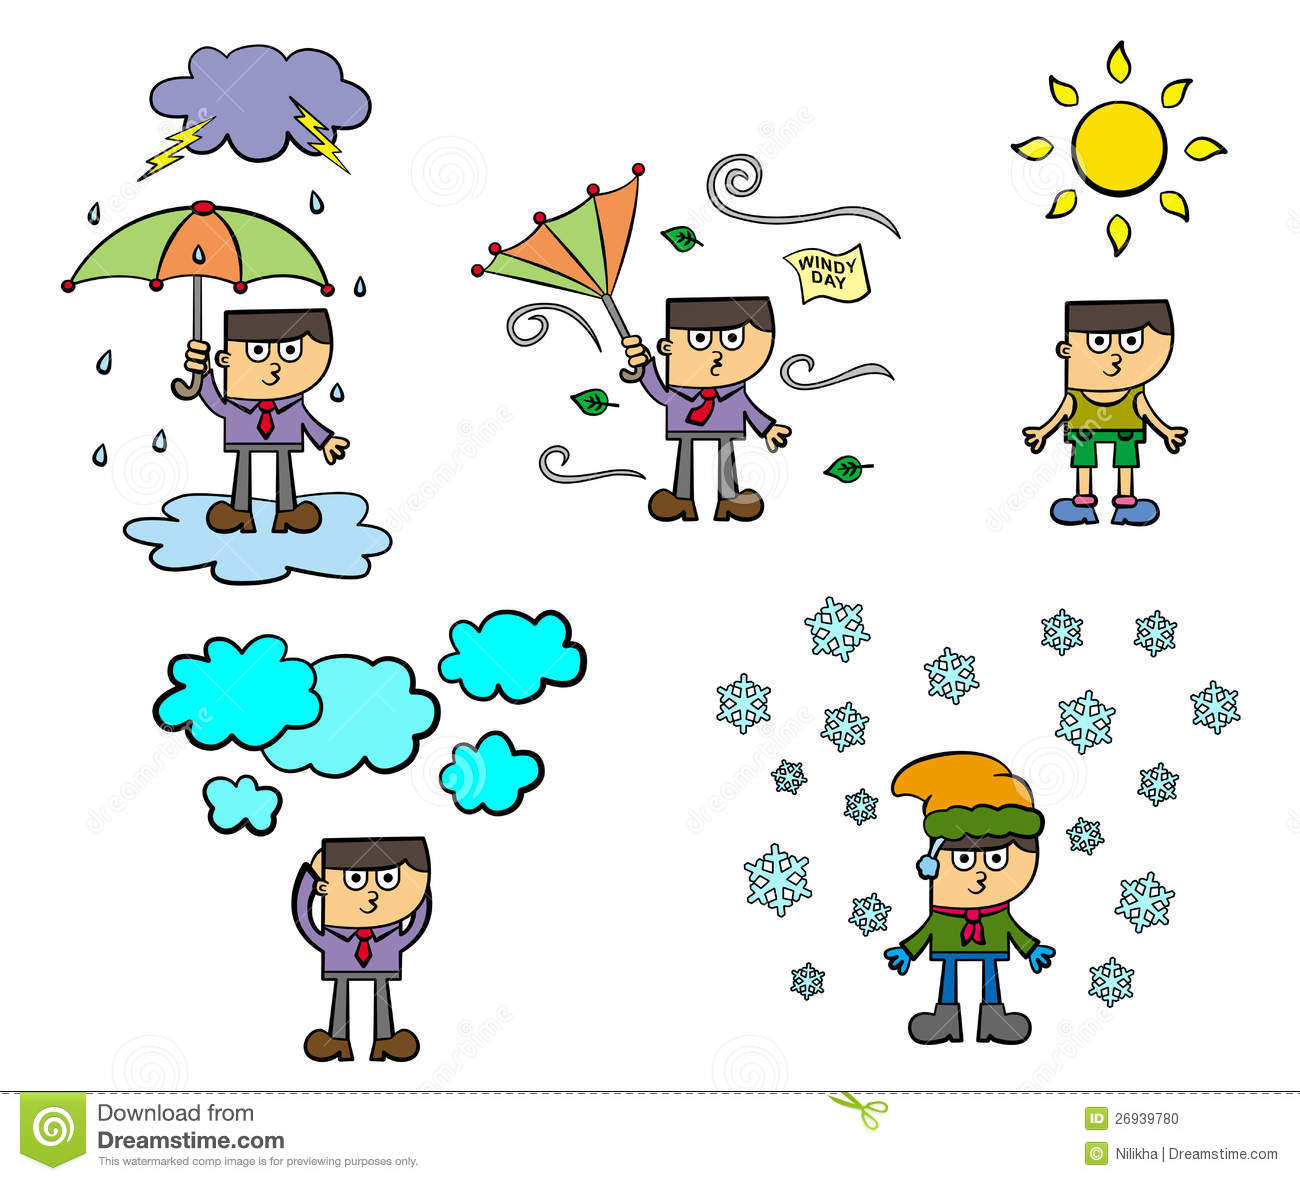 13ea235fc3 Weather conditions stock illustration. Illustration of humorous ...